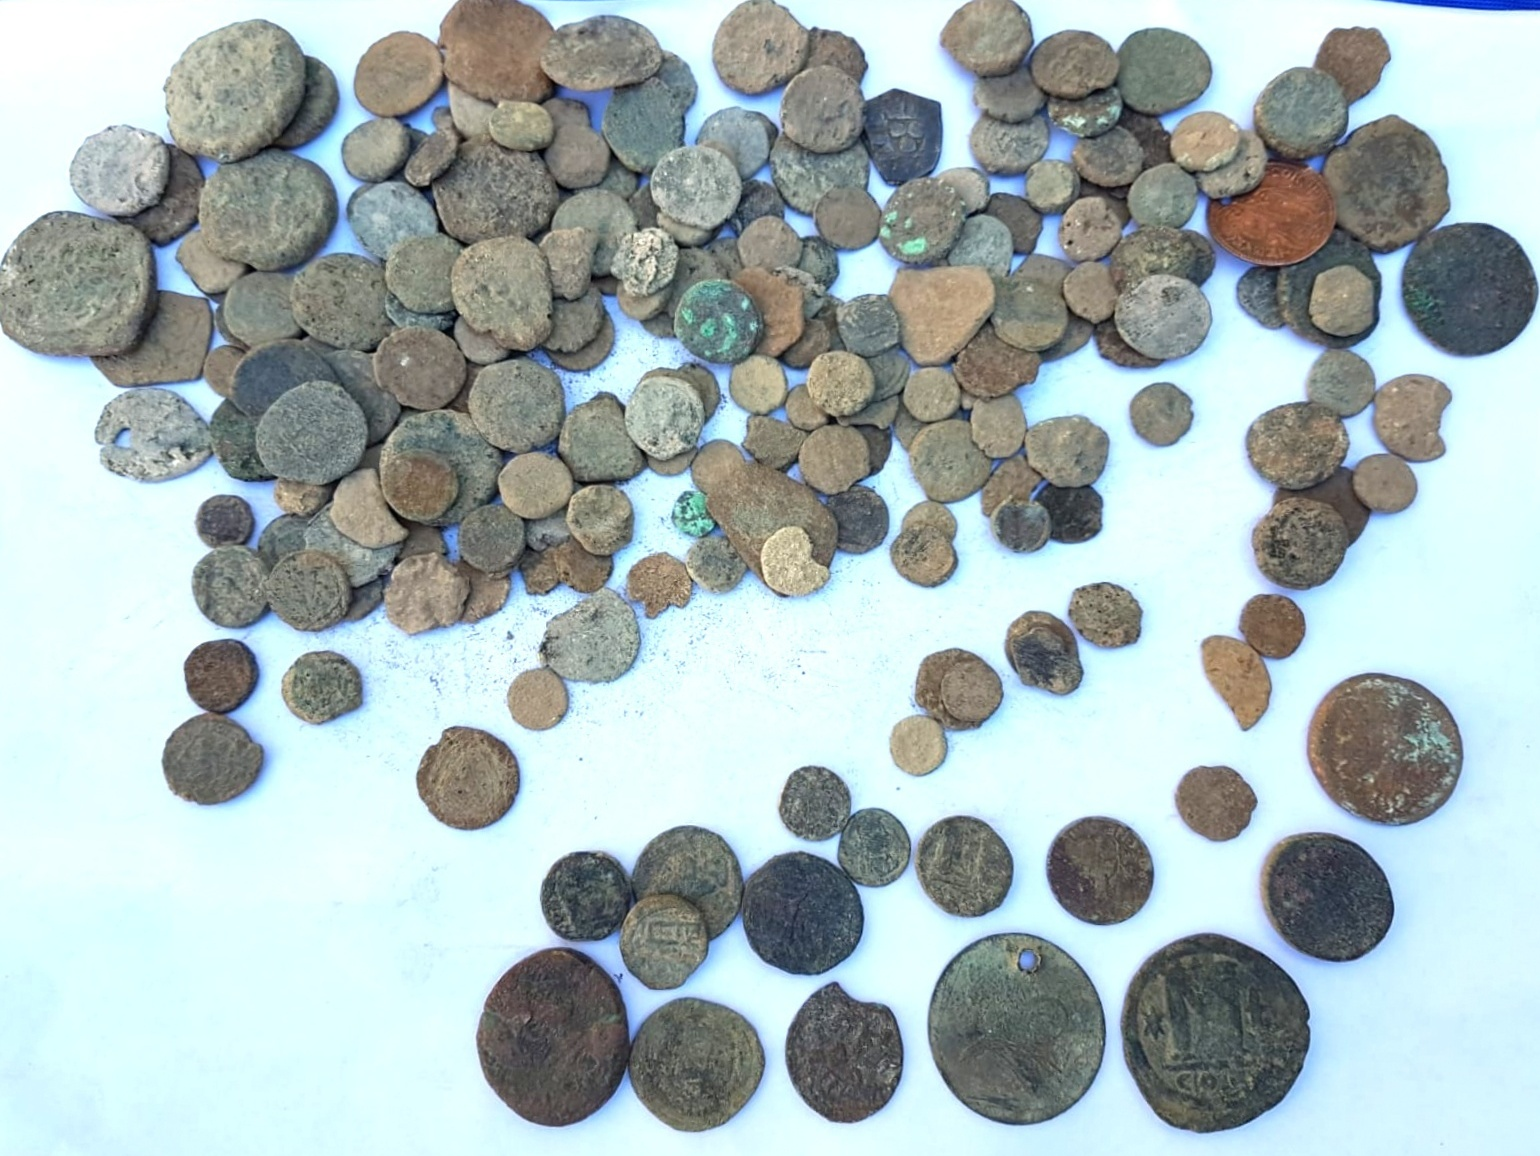 Israel finds 232 ancient coins in thief's home - Xinhua | English.news.cn